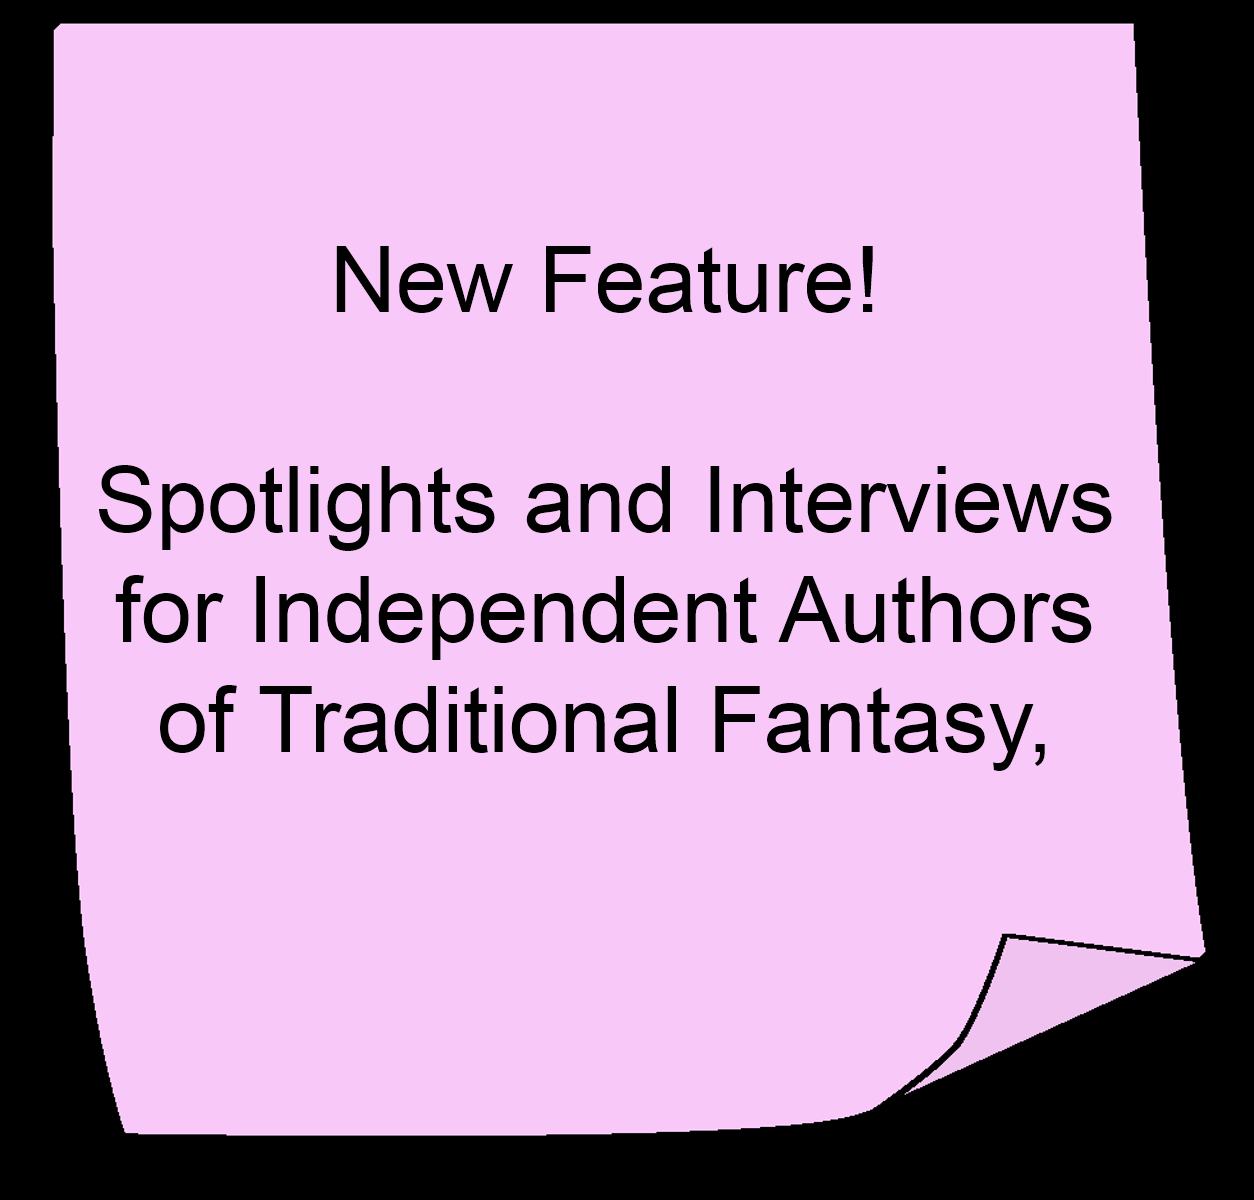 New Feature! Spotlights and Interviews for Independent Authors of Traditional Fantasy,